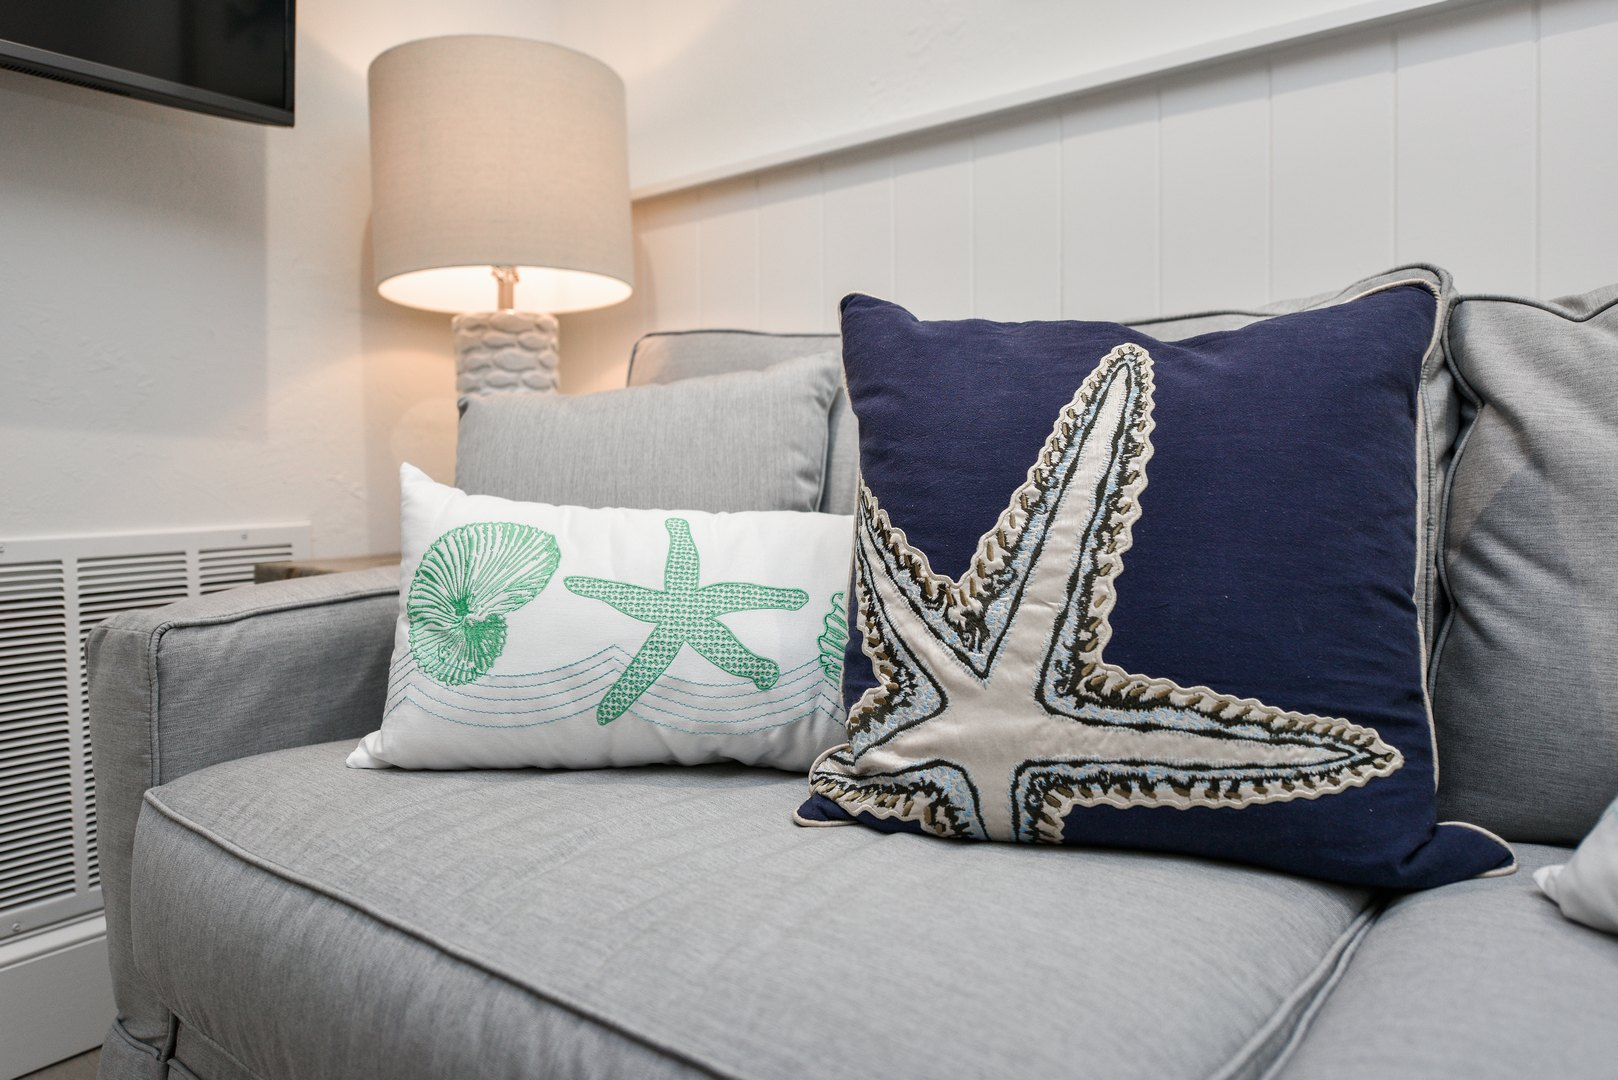 Comfortable Pillows and Coastal Decorations